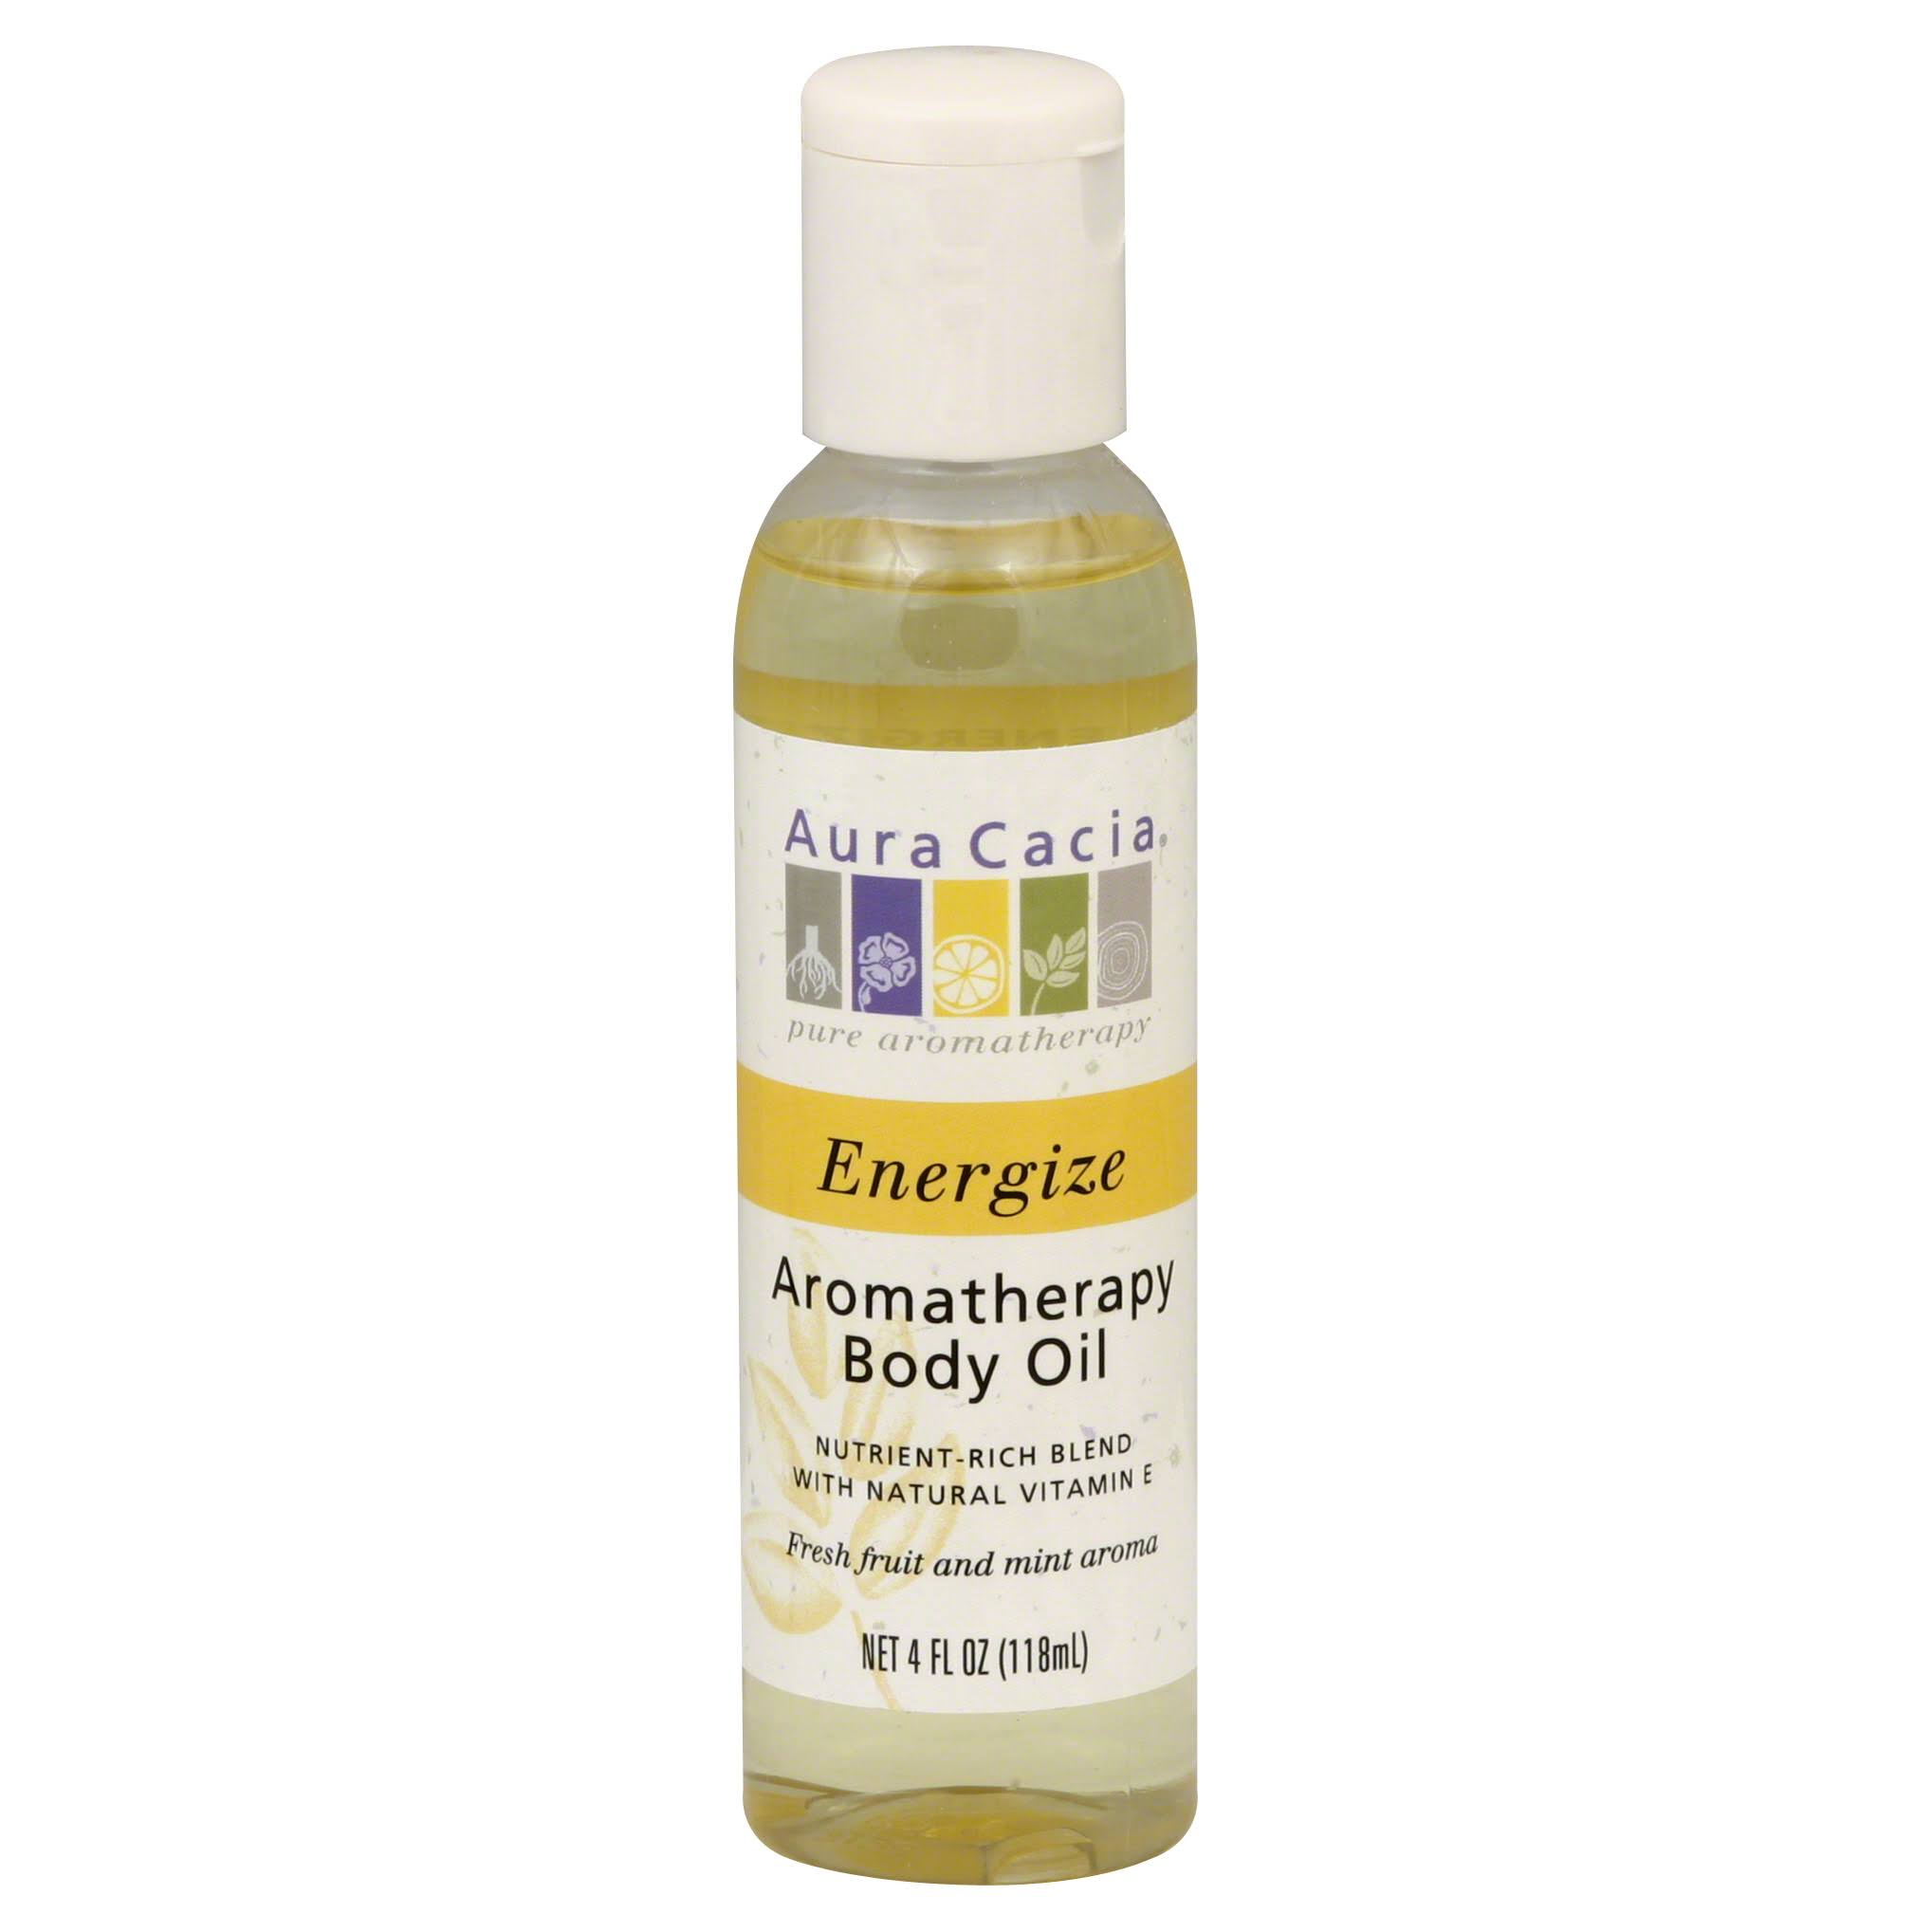 Aura Cacia Aromatherapy Body Oil - Energizing Lemon, 4oz